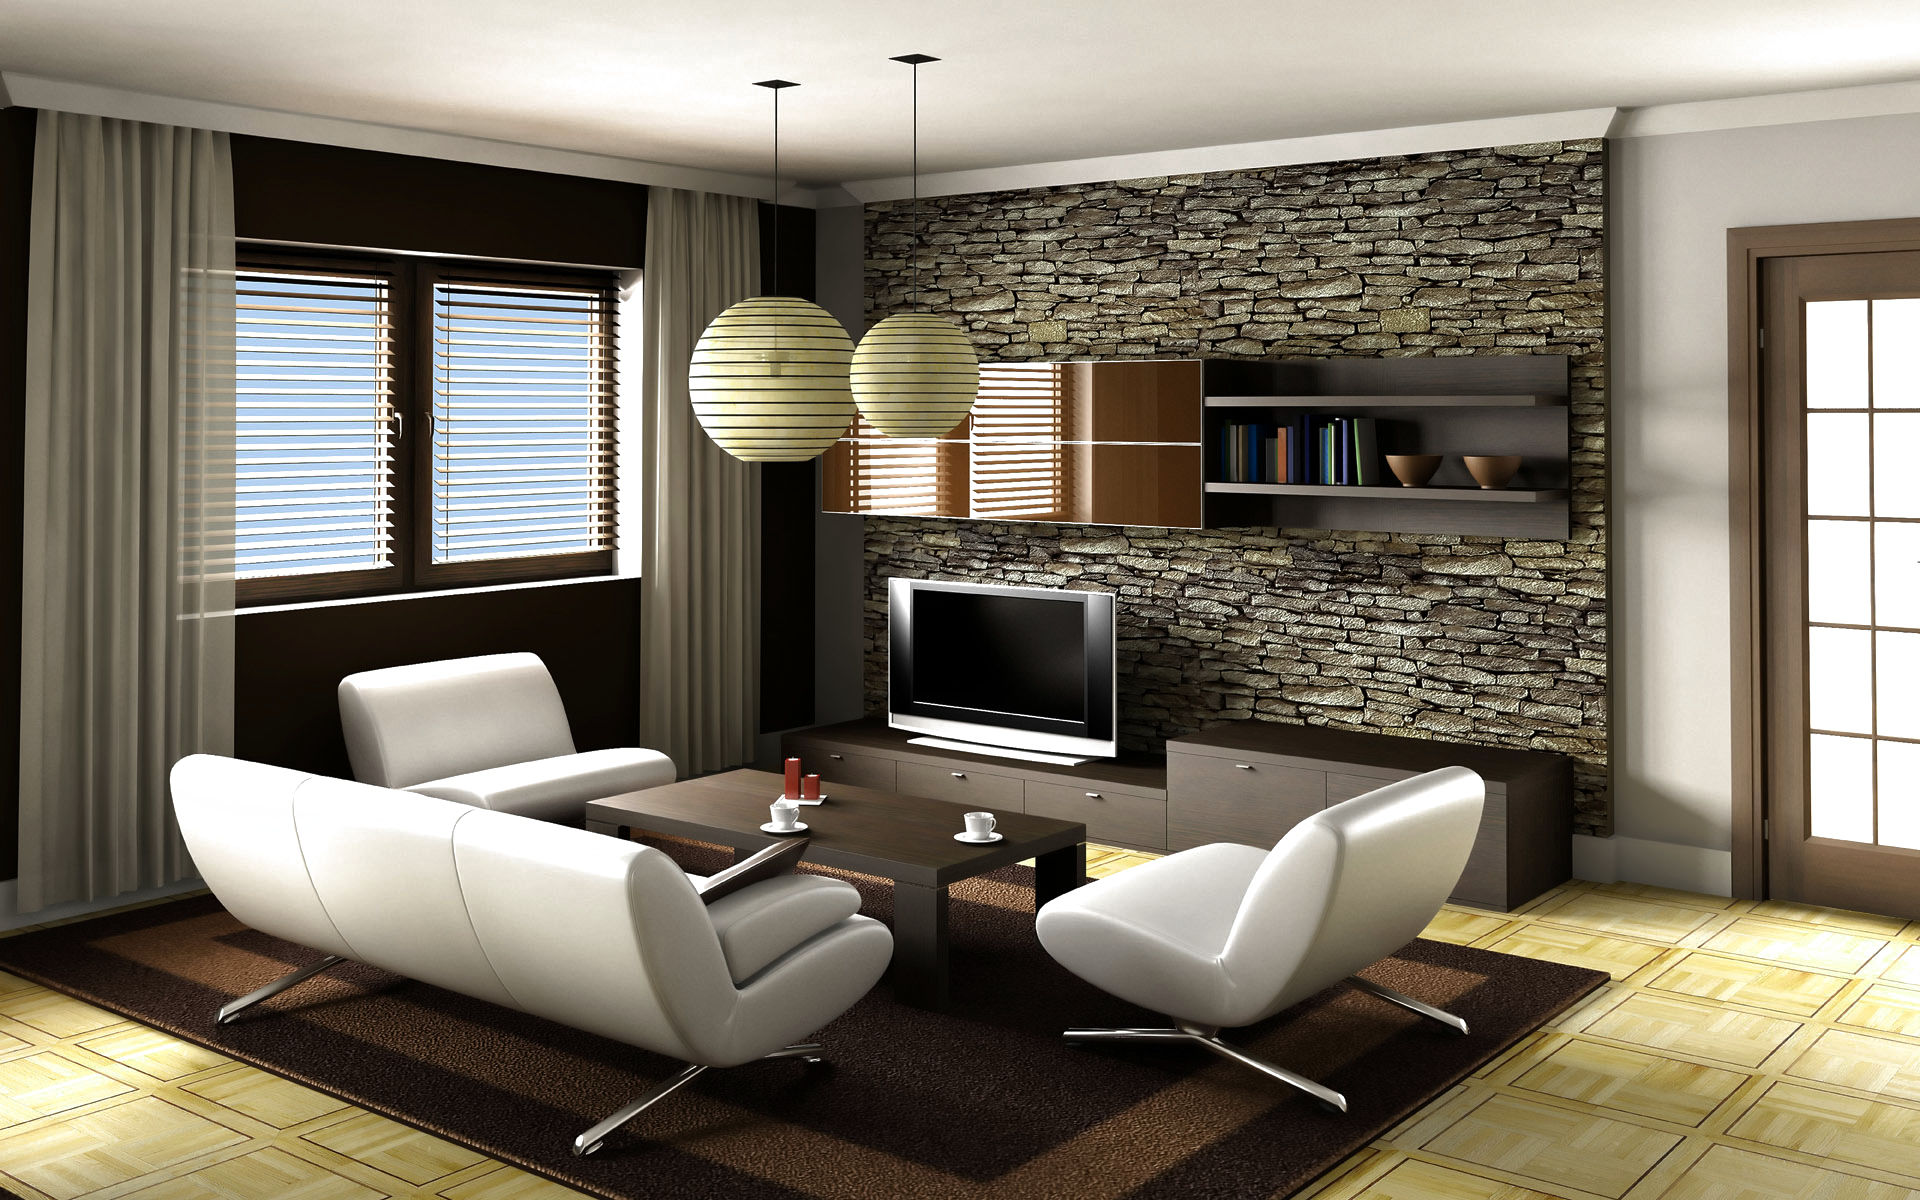 decorating rooms design designs remodels designer amp houzz ideas living room photos